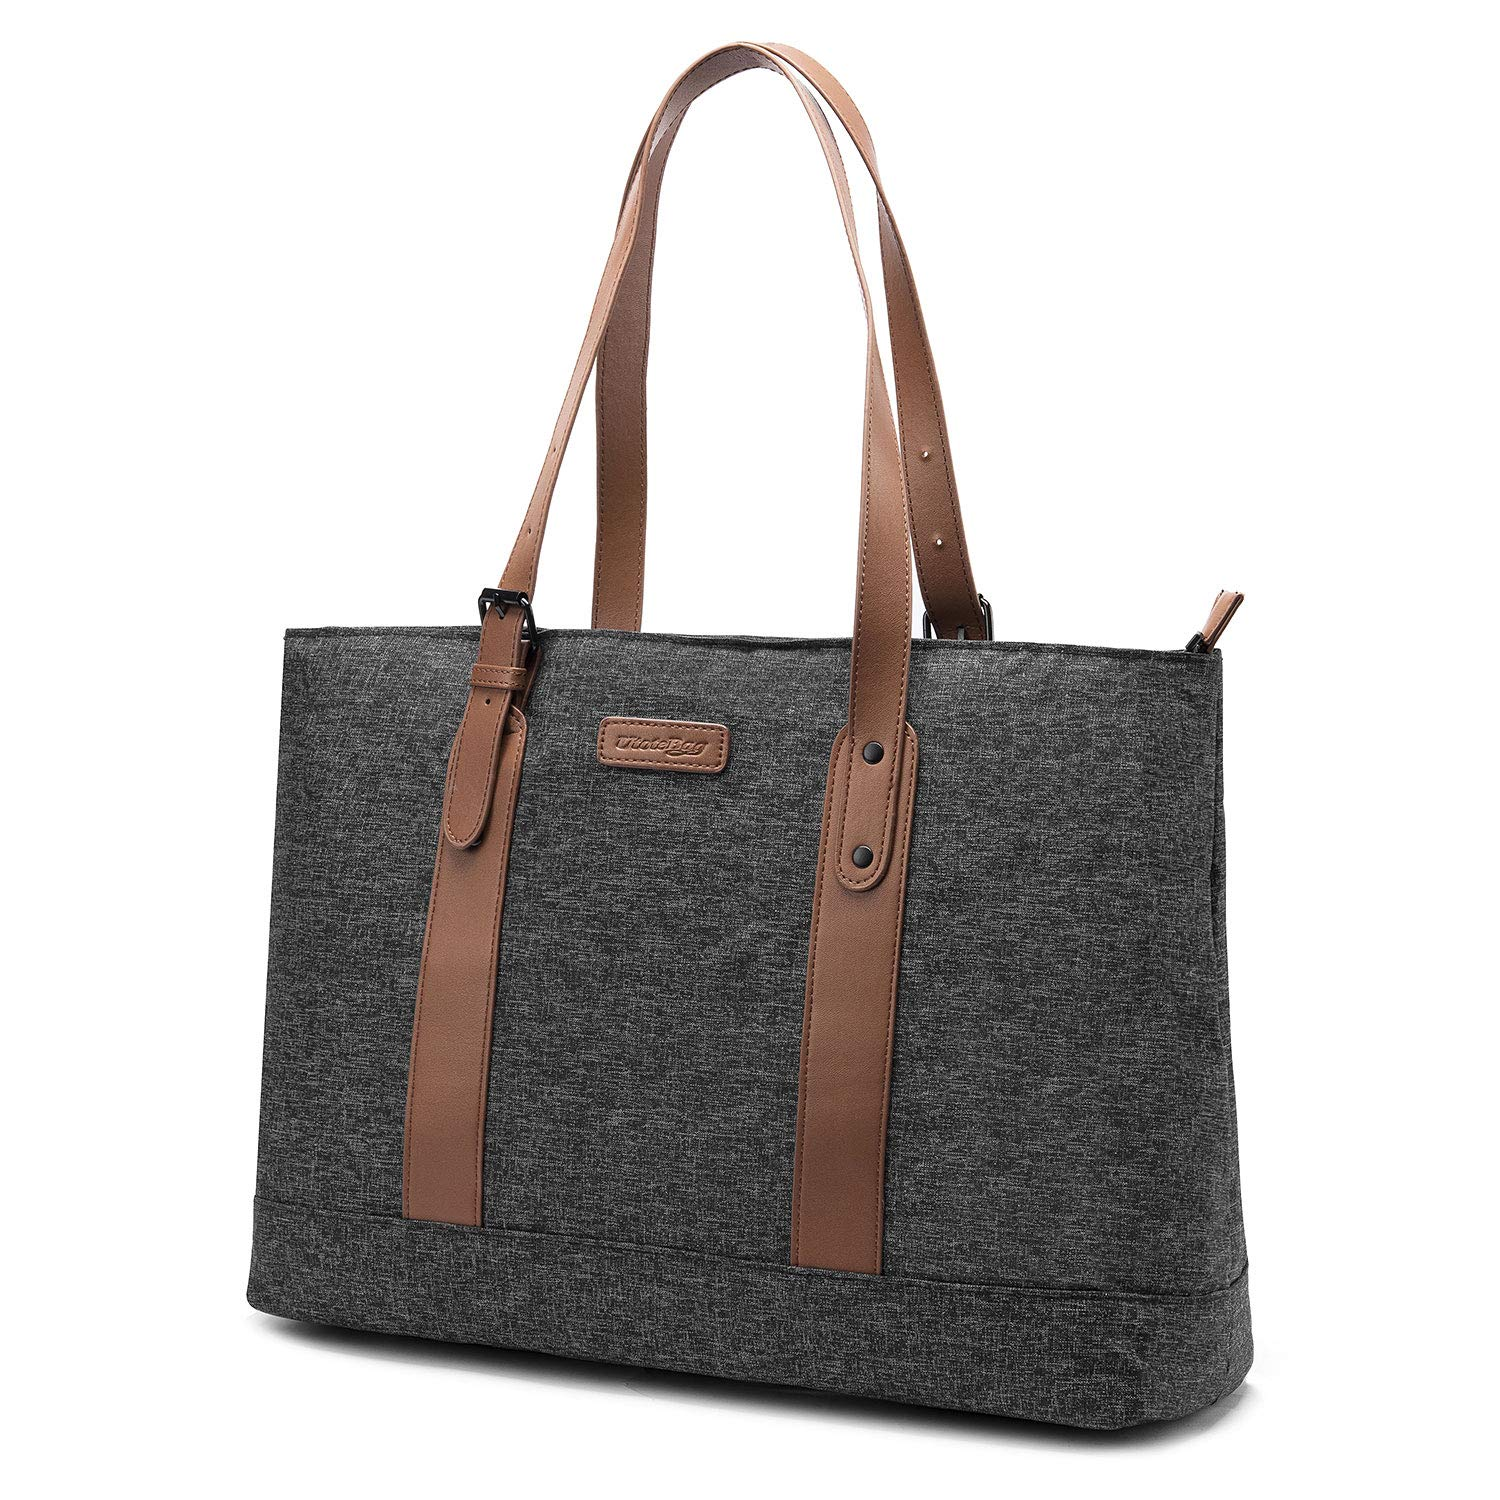 Laptop Bag,15-15.6 Inch Laptop Tote Bag,Casual Work Business Computer Bags fo...